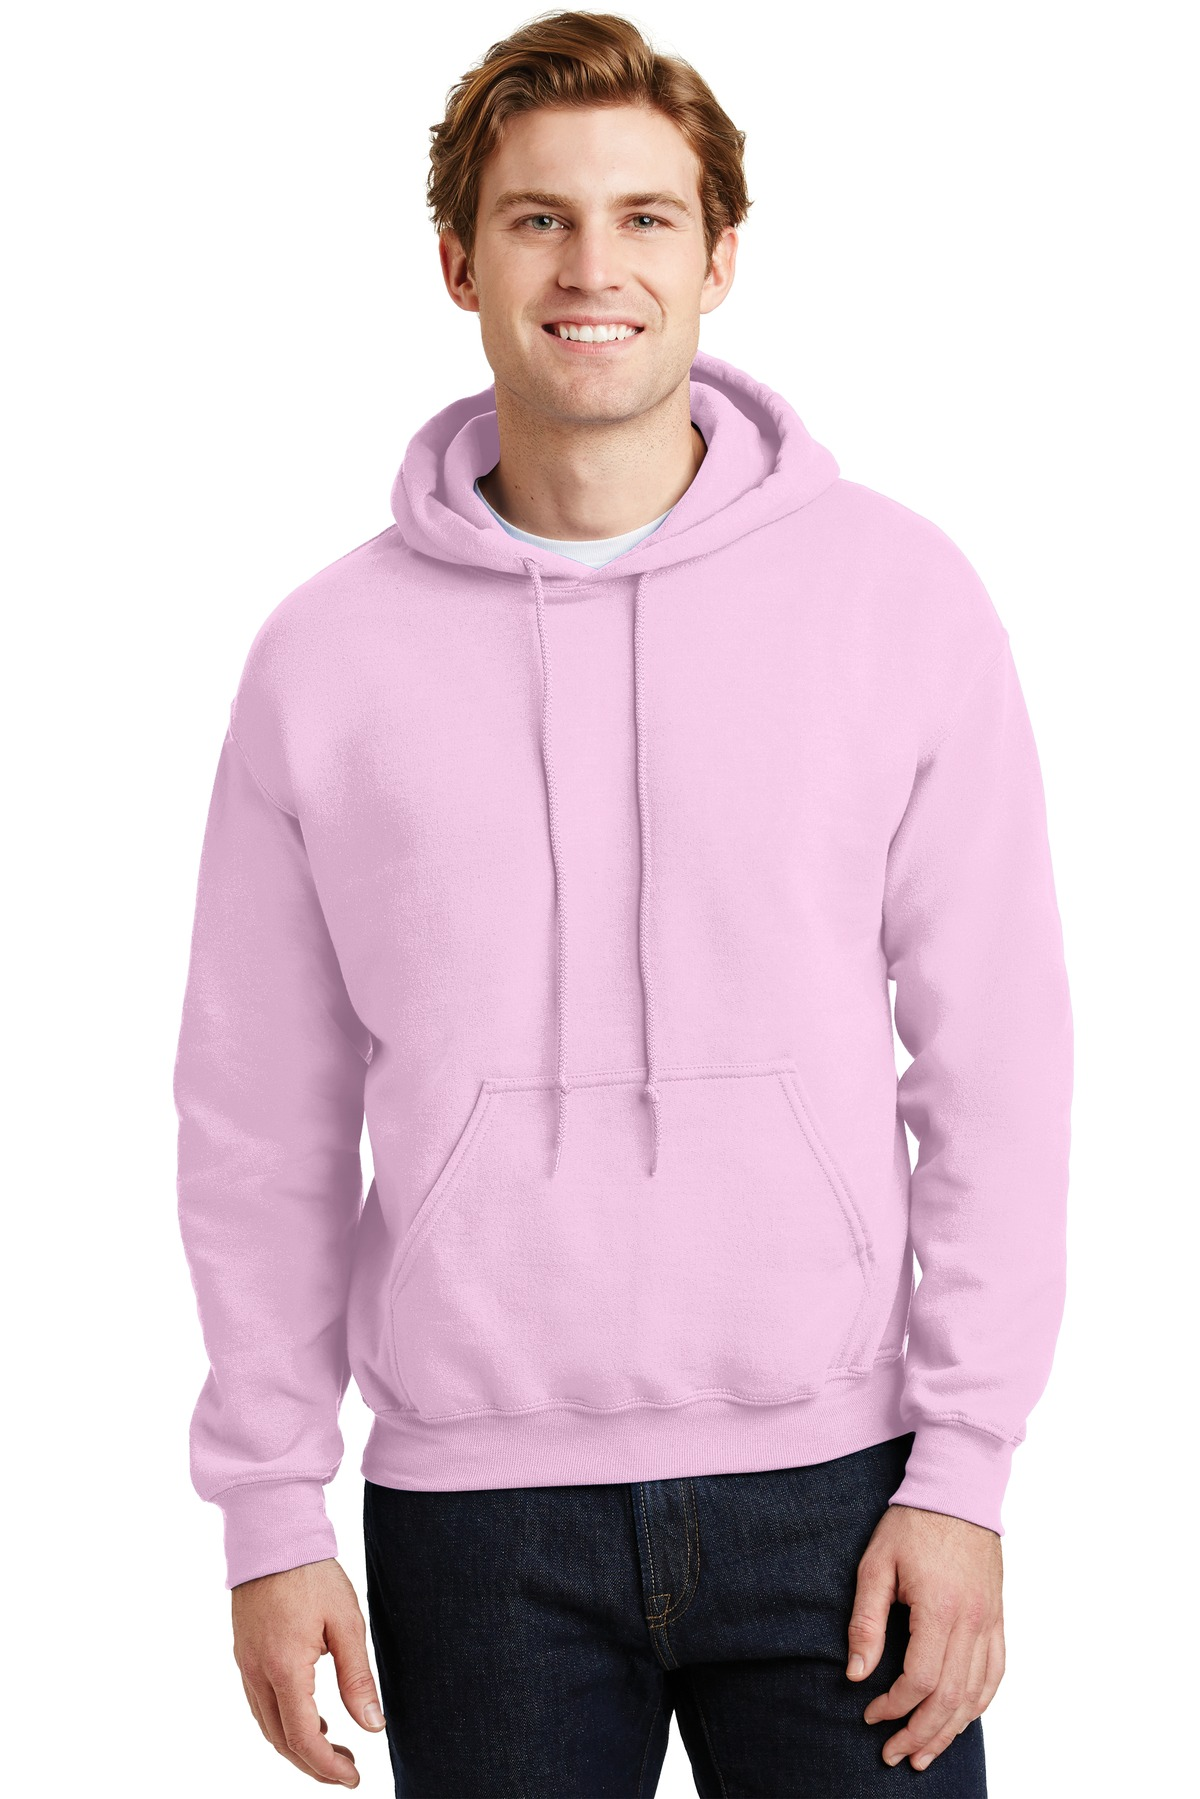 Gildan ®  - Heavy Blend ™  Hooded Sweatshirt.  18500 - Light Pink